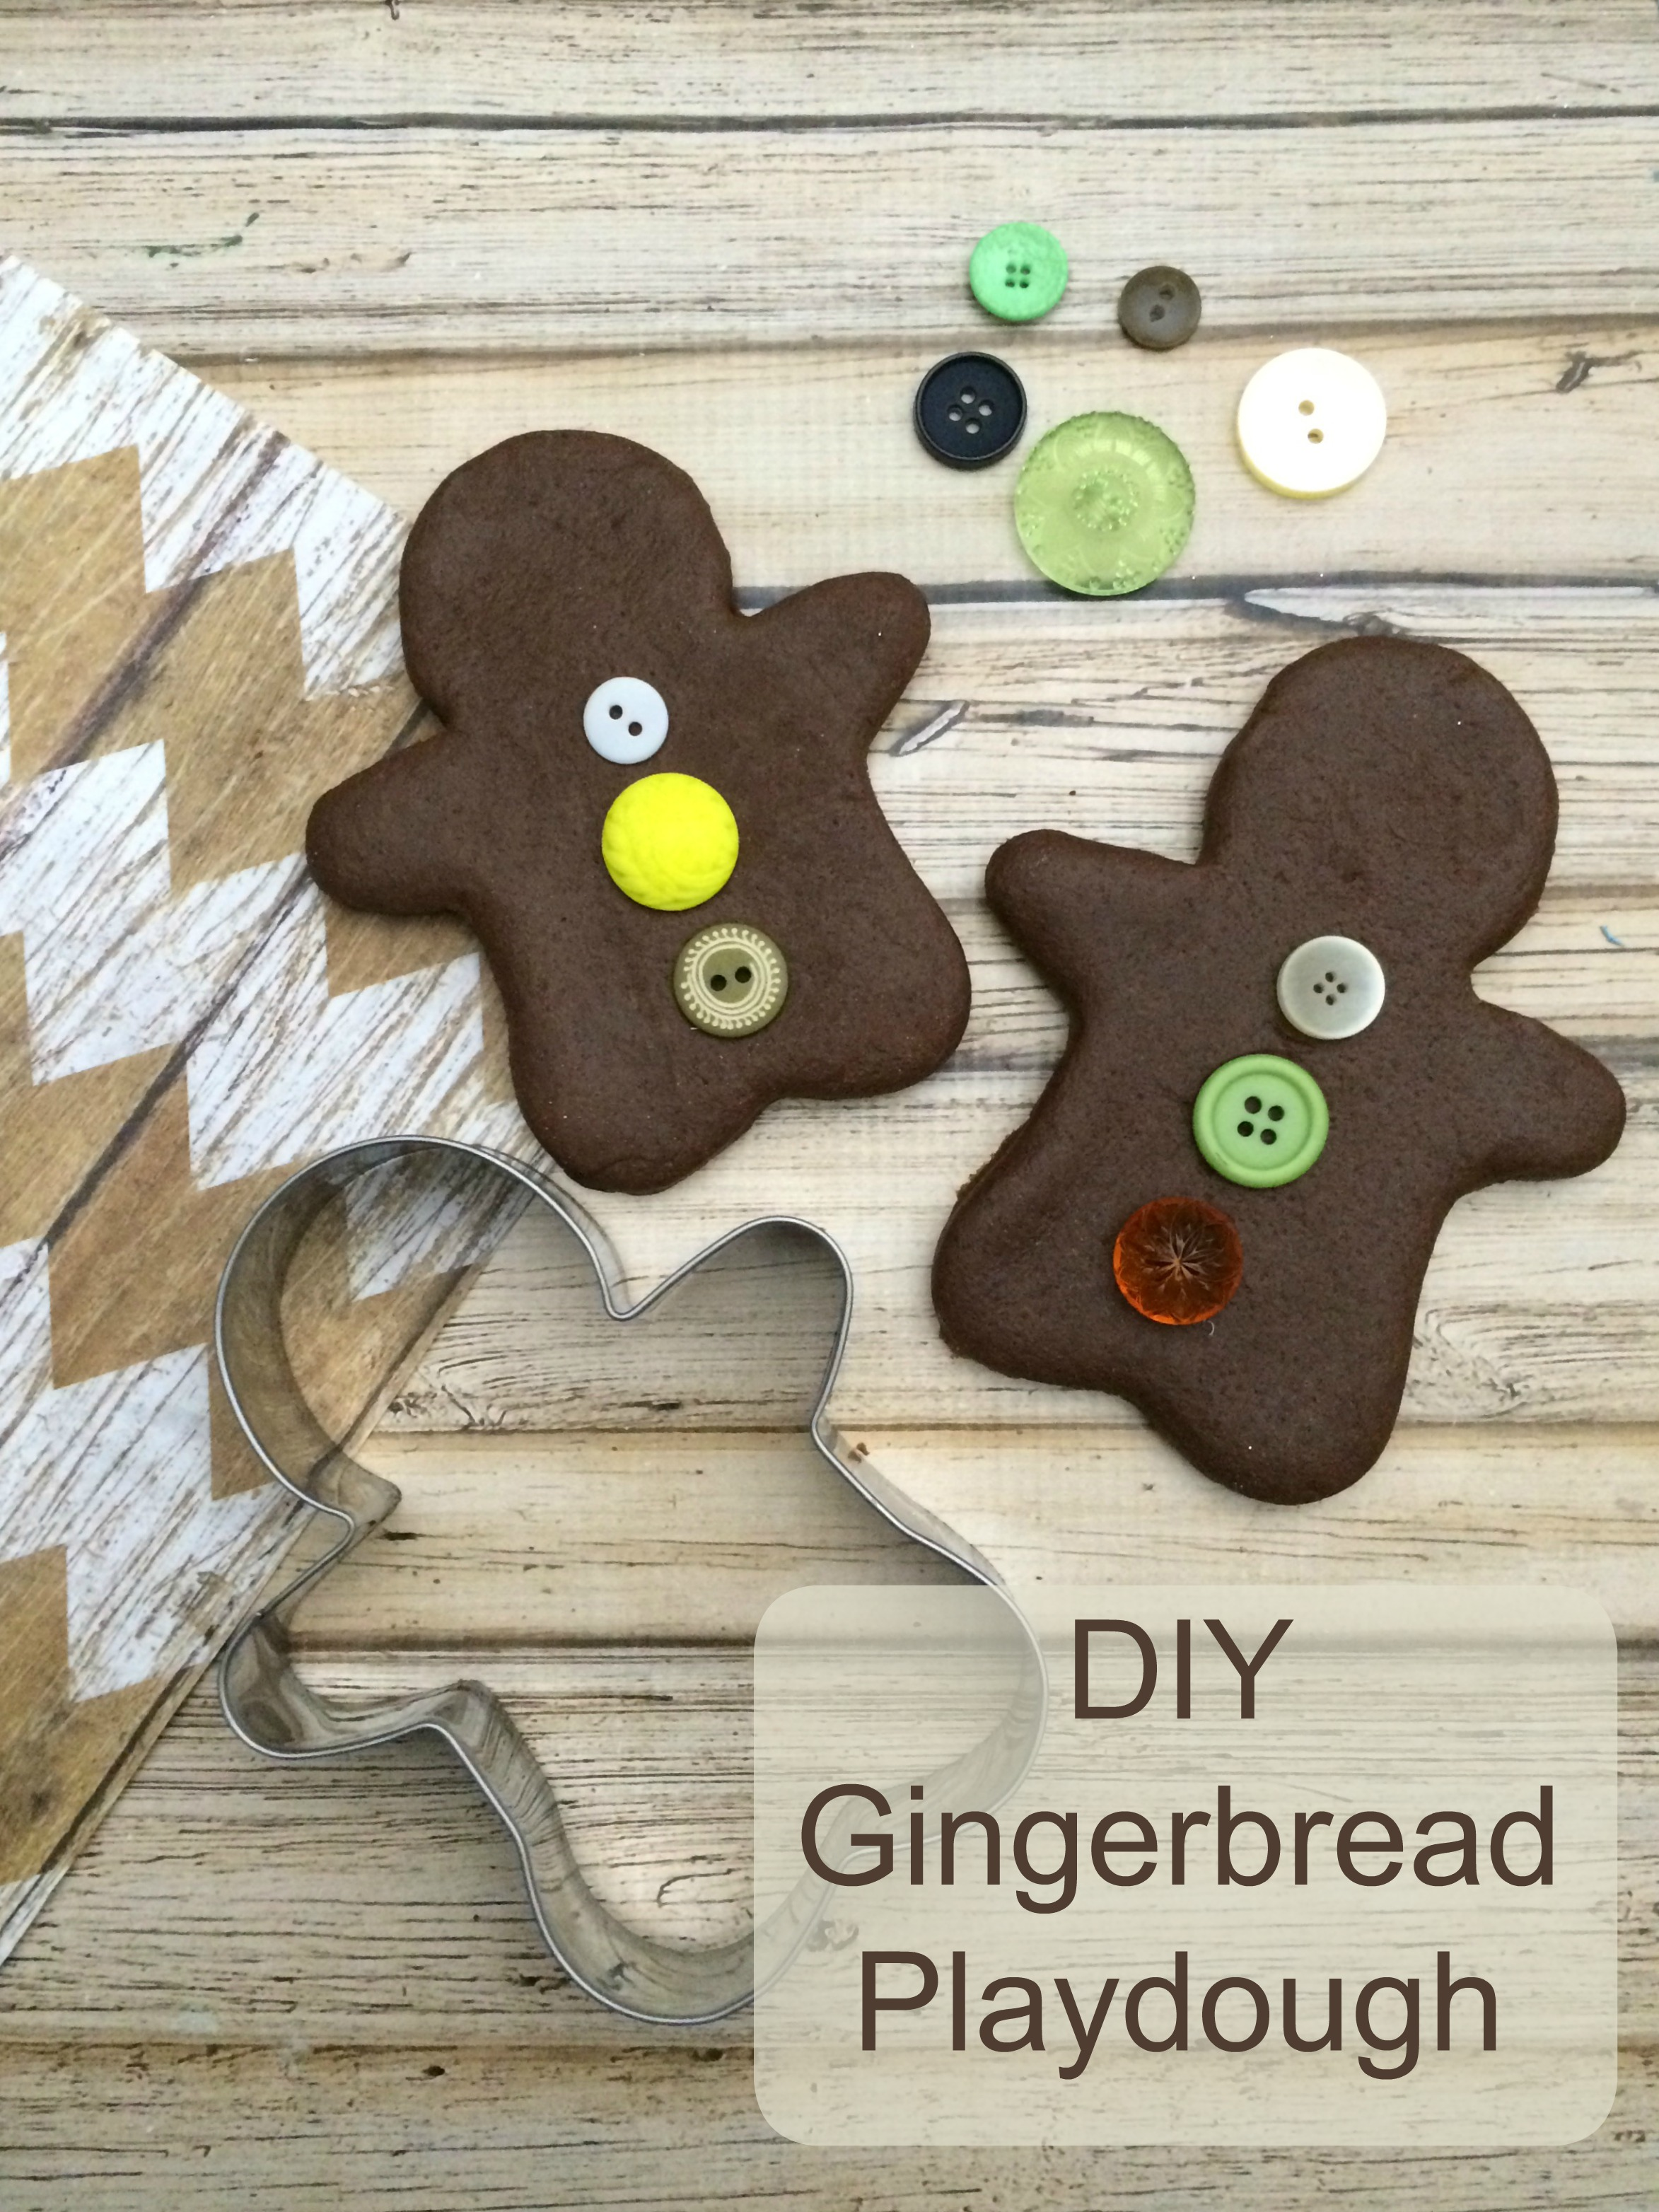 DIY Gingerbread Man Playdough + $500 Giveaway